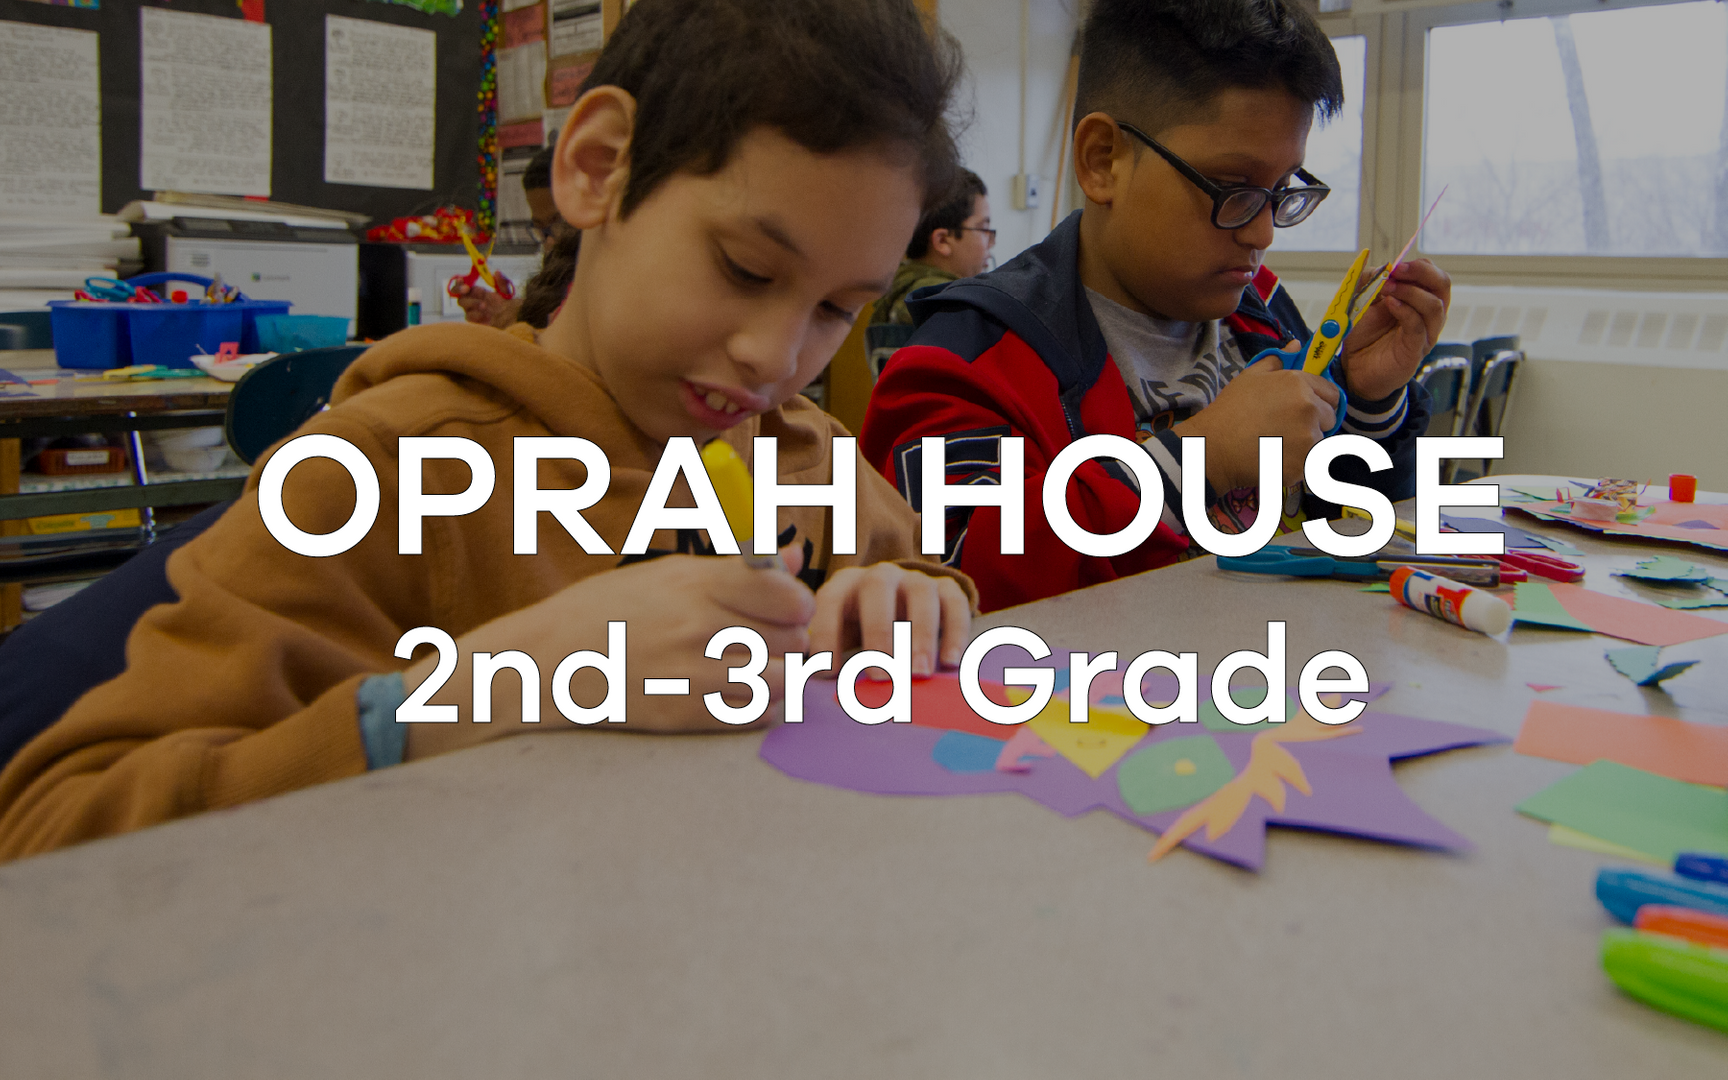 Oprah House 2nd - 3rd Grade